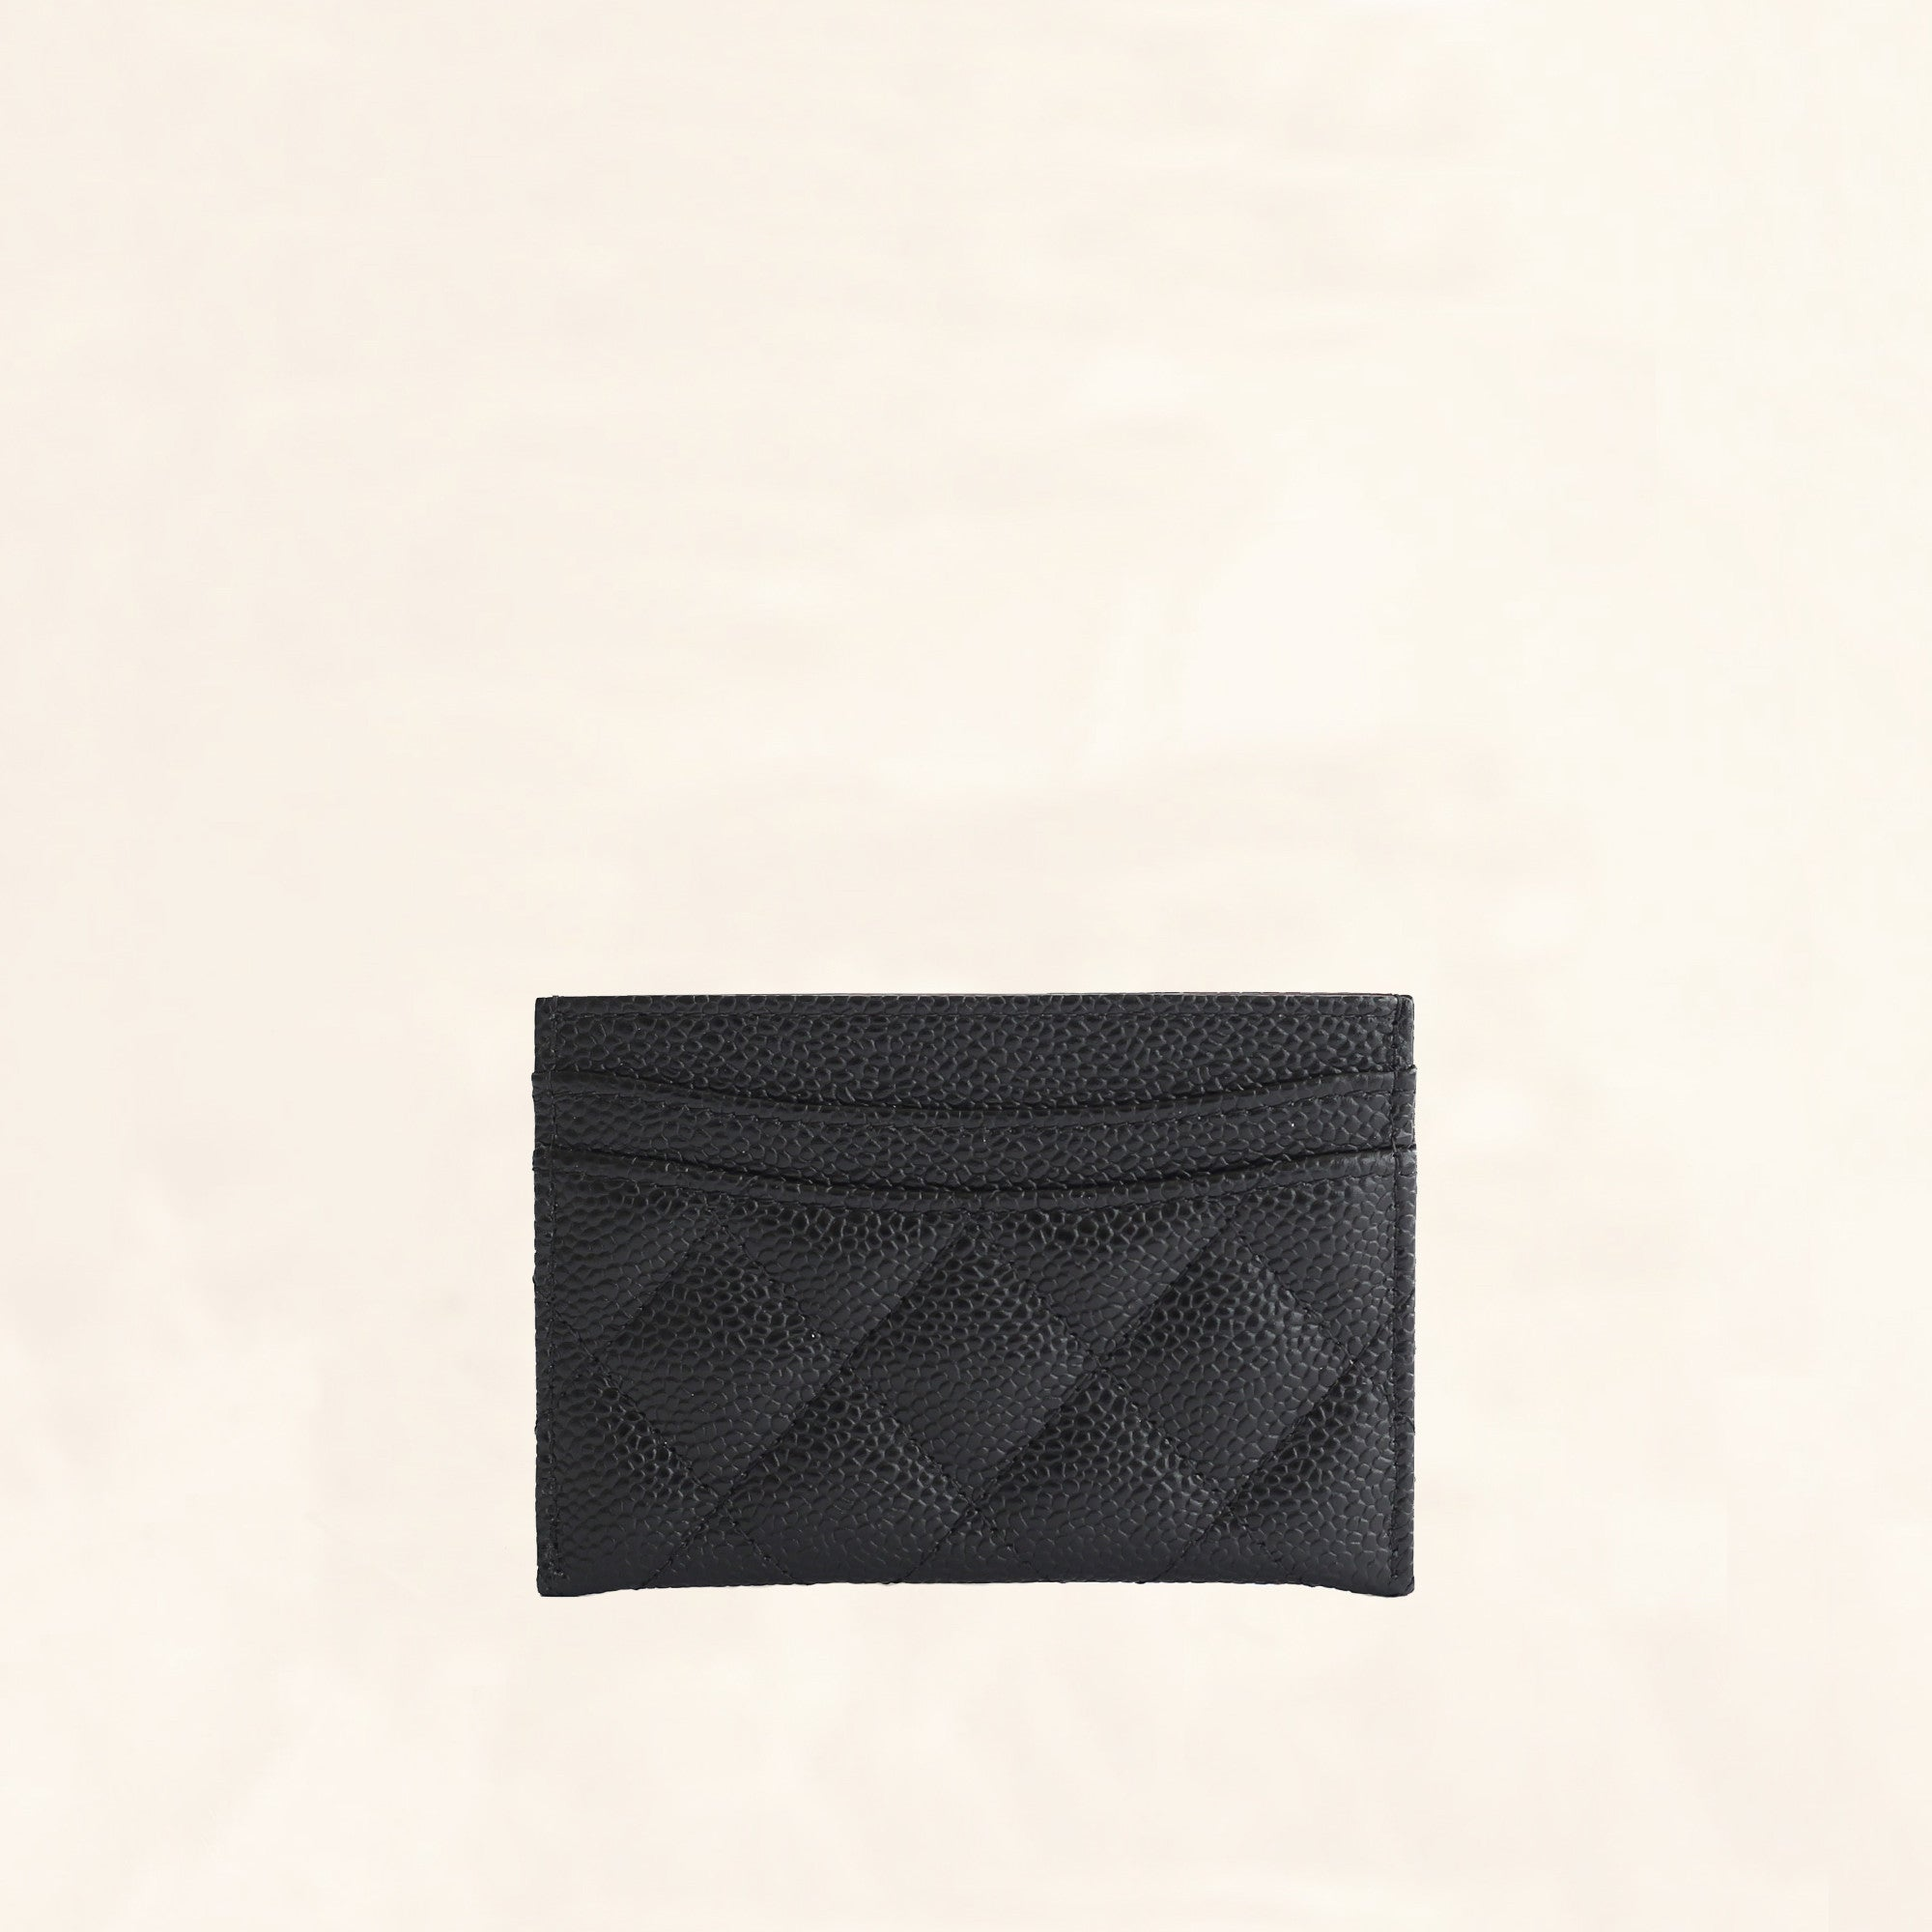 07a05c14eee1 Chanel | Caviar Card Holder with SHW | One Size - The-Collectory